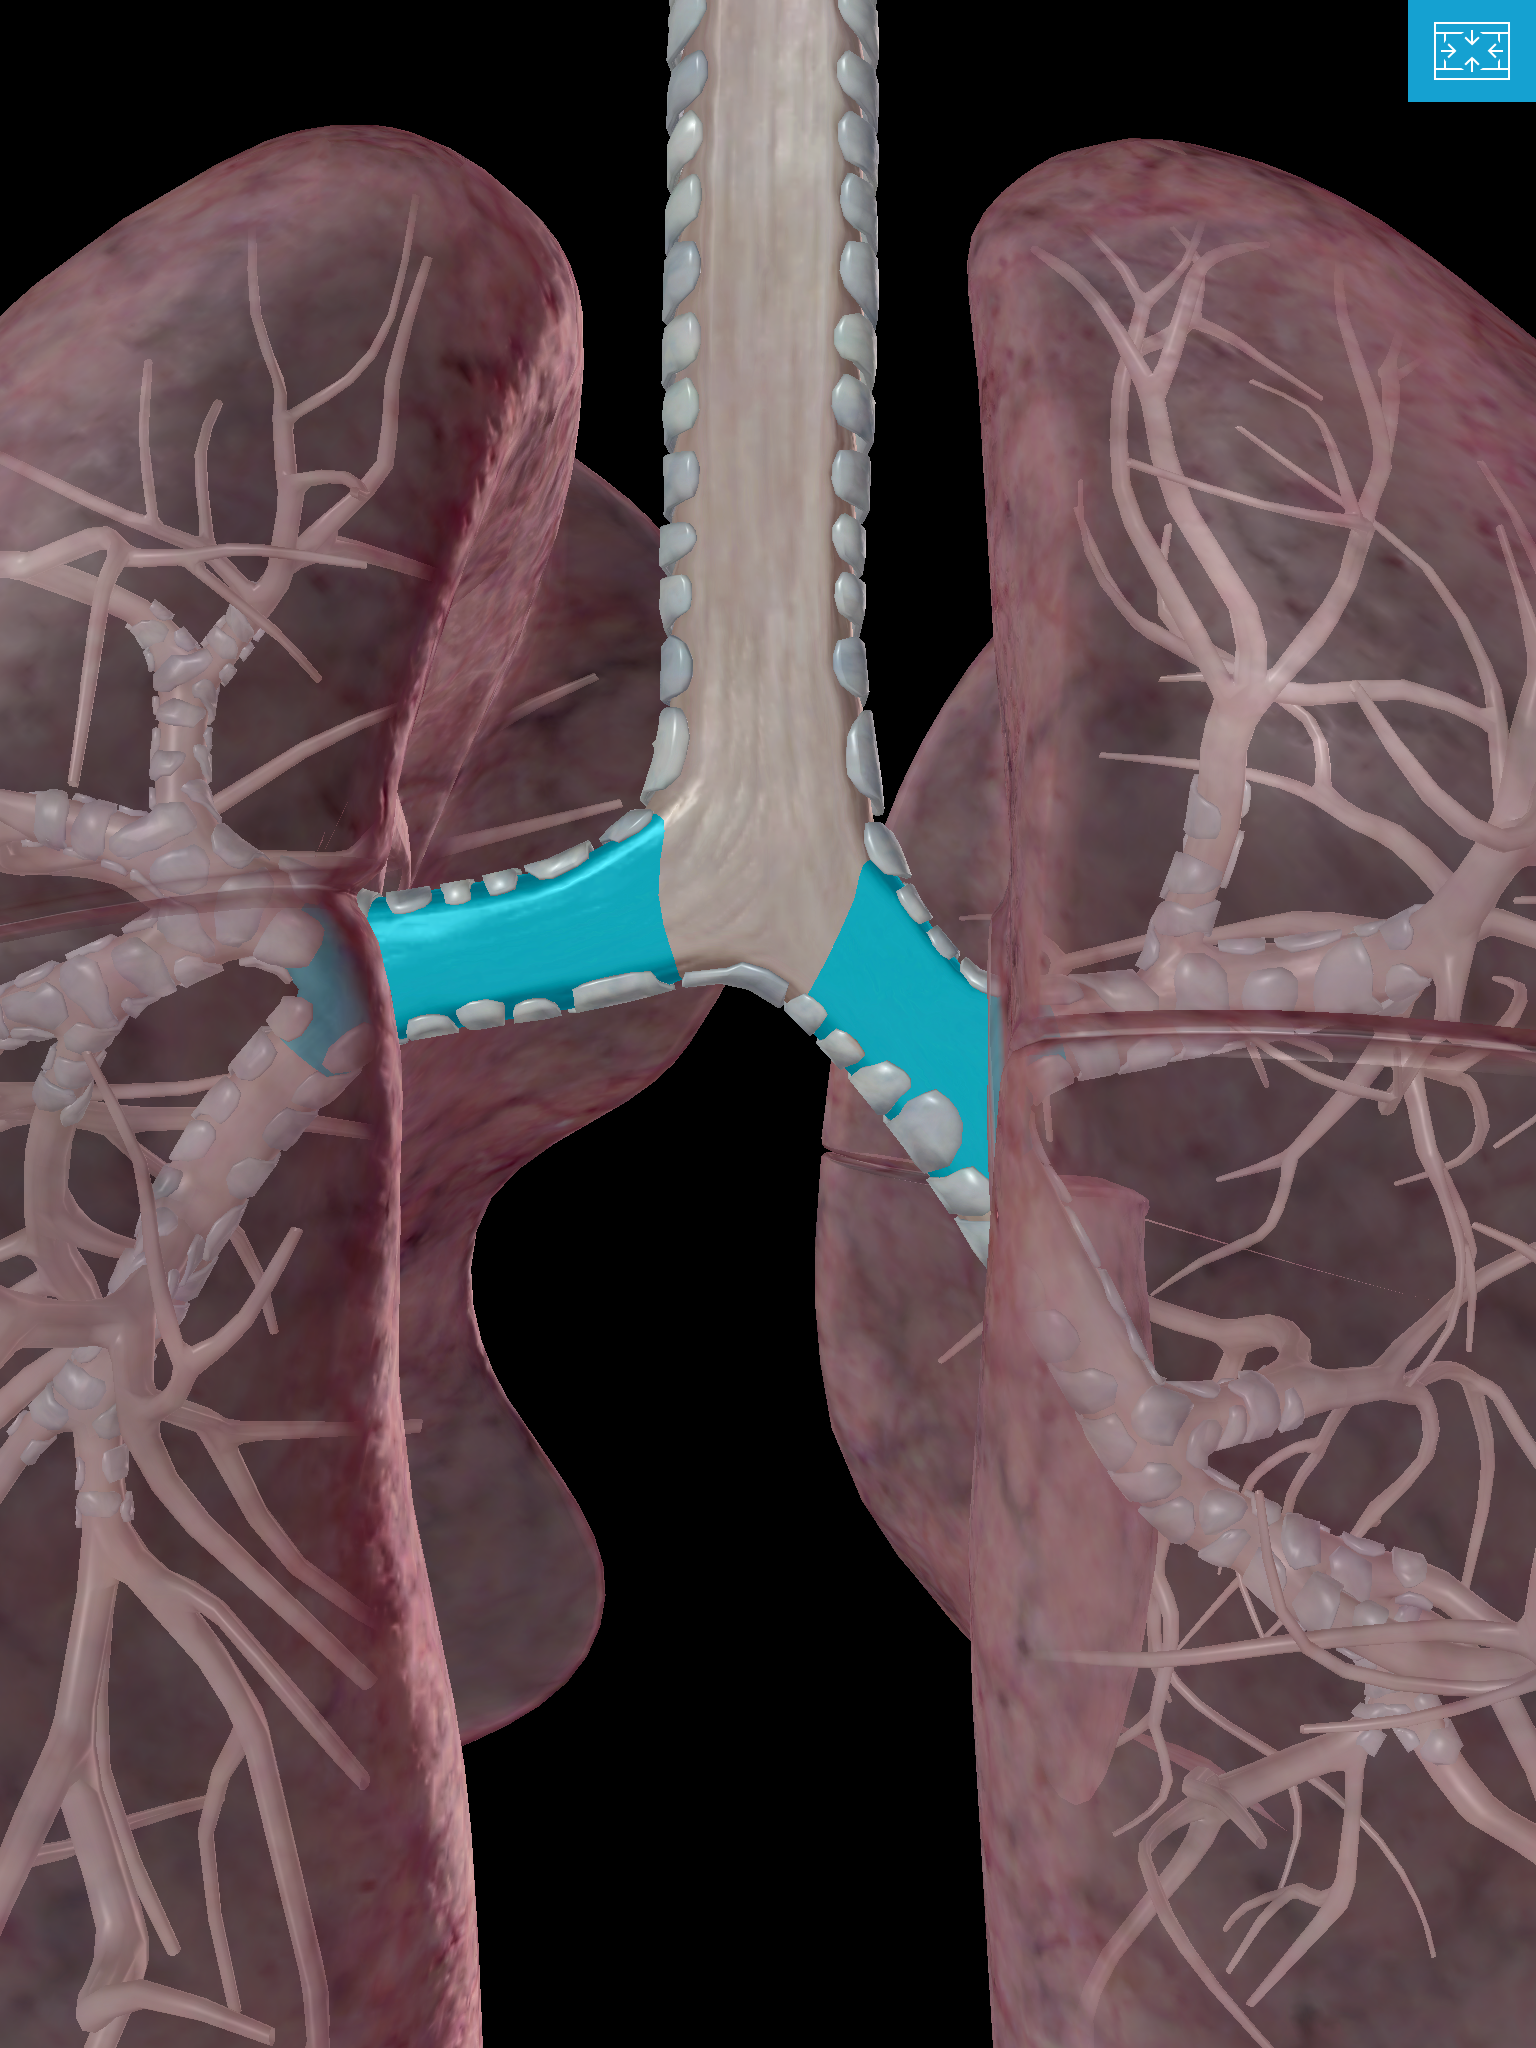 Lower-Respiratory-System-lungs-primary-bronchus-hyaline-cartilage.png